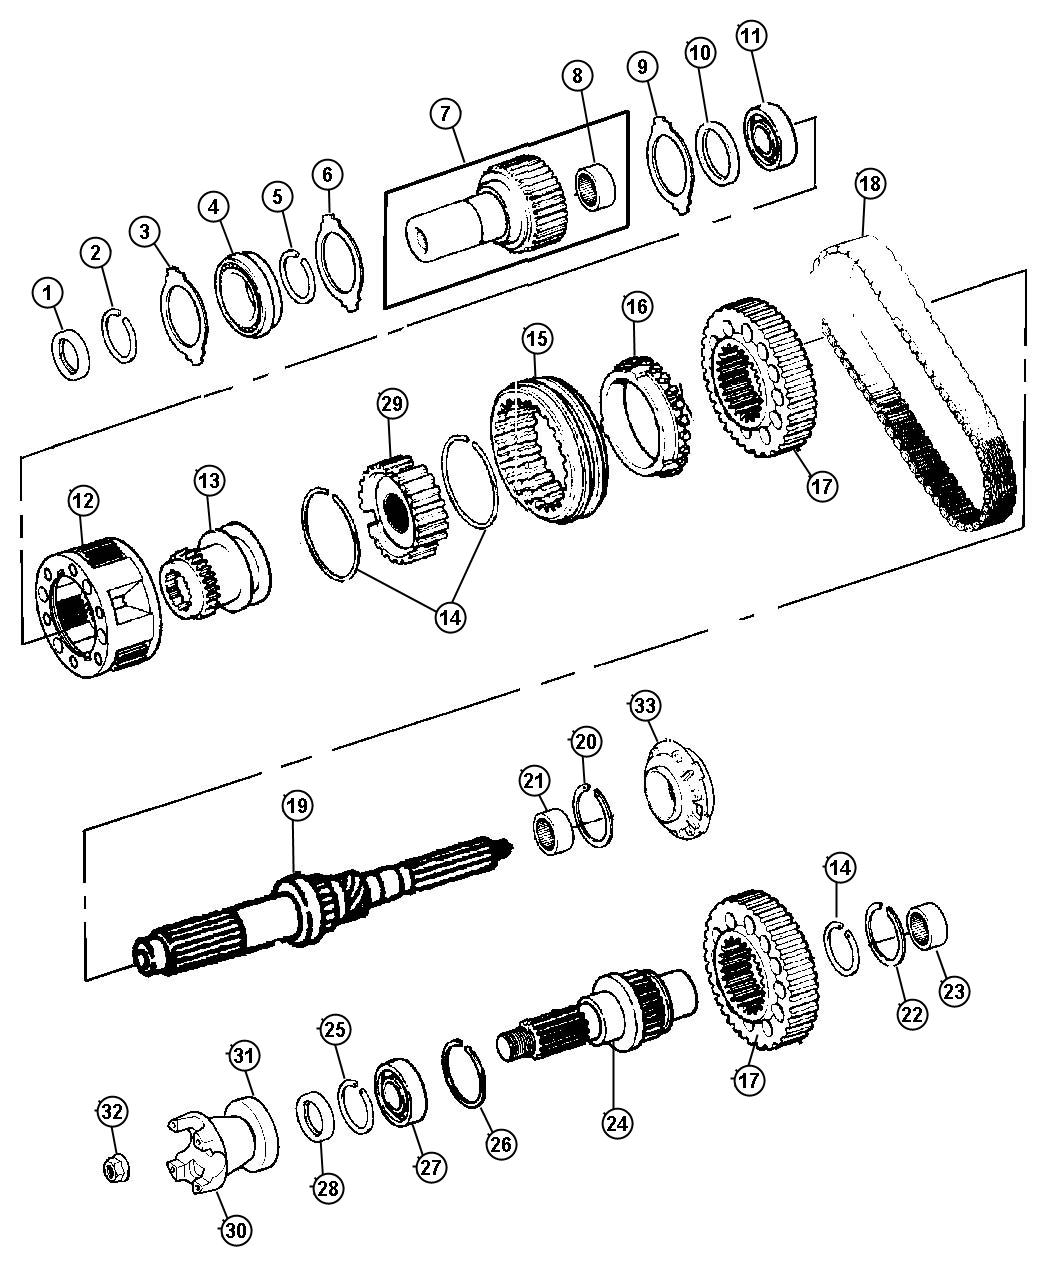 International Fuel Injector Parts Diagrams - List of Wiring ... on chrysler 300 compressor, chrysler 300m wiring diagram, chrysler 300 parts list, chrysler 300 fuse location, chrysler 300 carburetor, chrysler 300 dash removal, chrysler 300 timing marks, chrysler town and country wiring-diagram, chrysler pacifica wiring-diagram, chrysler 300 lower control arm replacement, chrysler 300 sensor, chrysler aspen wiring diagram, chrysler 300 torque specs, chrysler 300 ignition coil, chrysler 200 wiring diagram, chrysler concorde wiring-diagram, chrysler 300 lighting, chrysler 300 system, chrysler 300 ignition switch, chrysler crossfire wiring diagram,